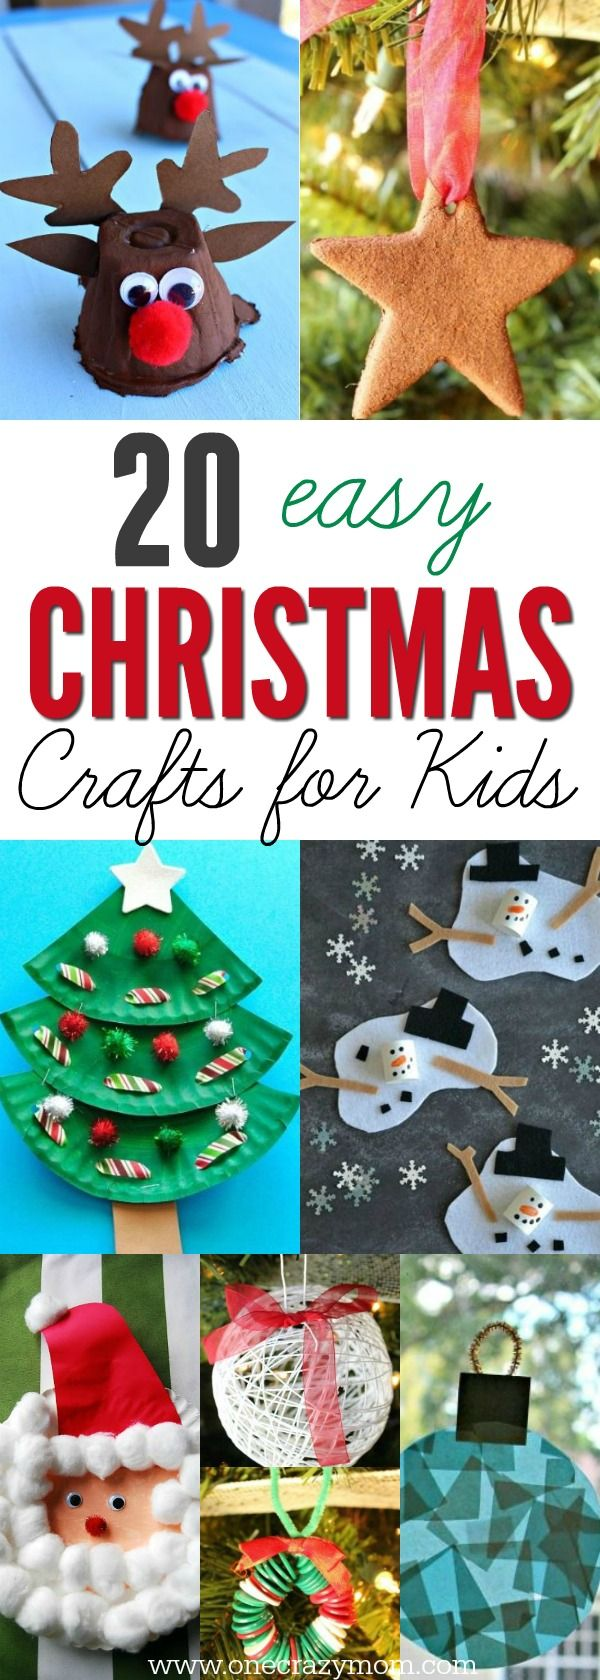 Preschool Christmas Craft Ideas Part - 47: Find Easy Christmas Crafts For Kids Including Preschool Christmas Crafts.They  Will Love These Holiday Crafts For Kids.20 Christmas Craft Ideas For U2026